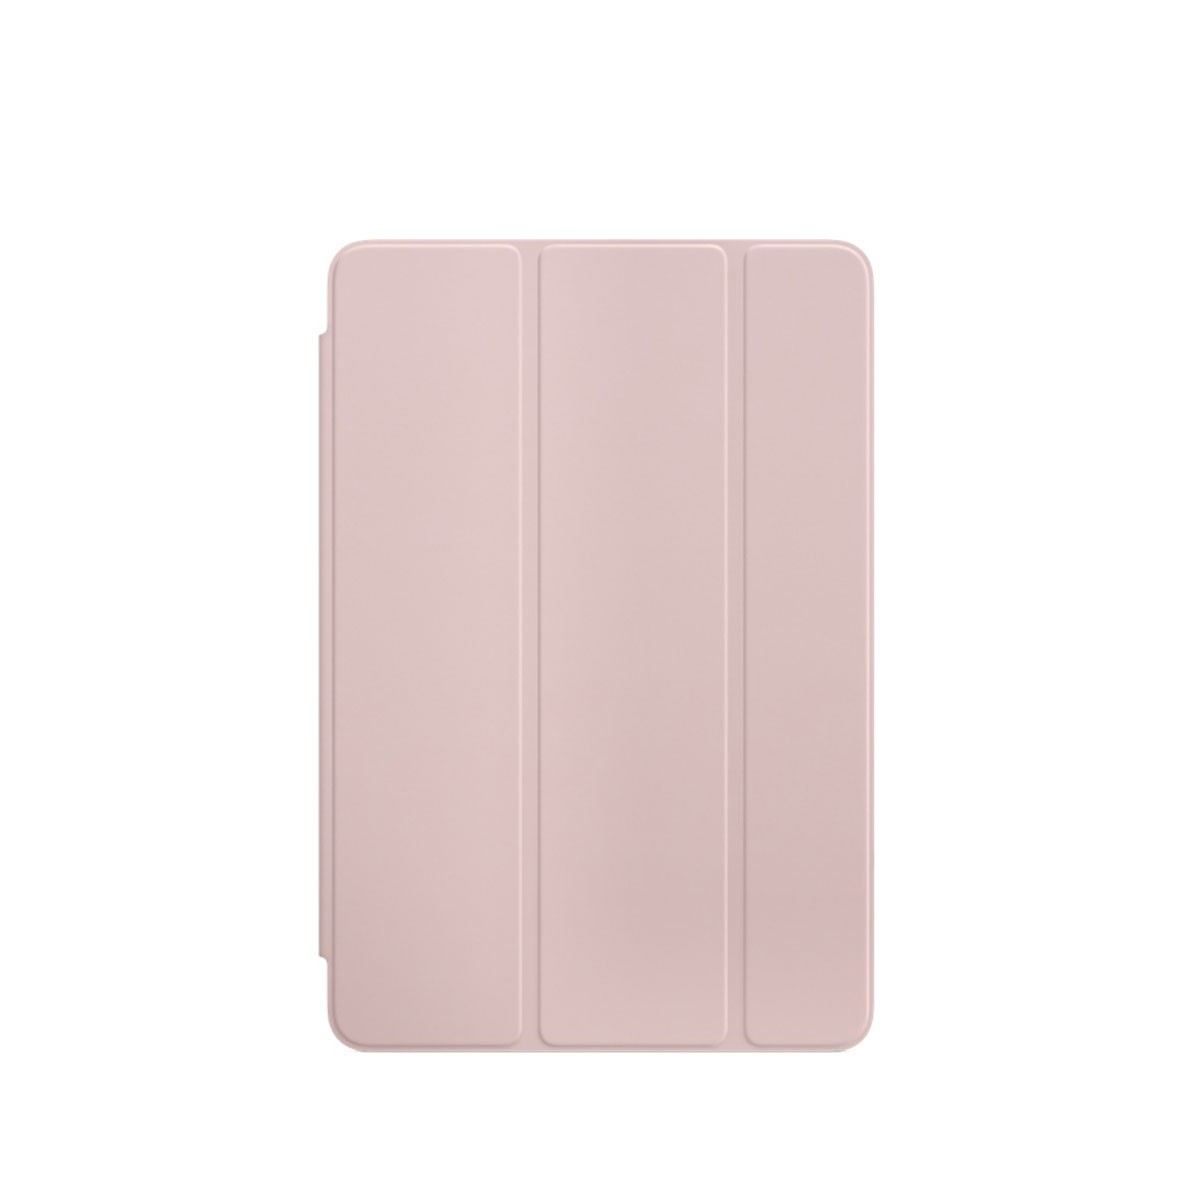 Apple iPad mini 4 Smart Cover - pískově růžový